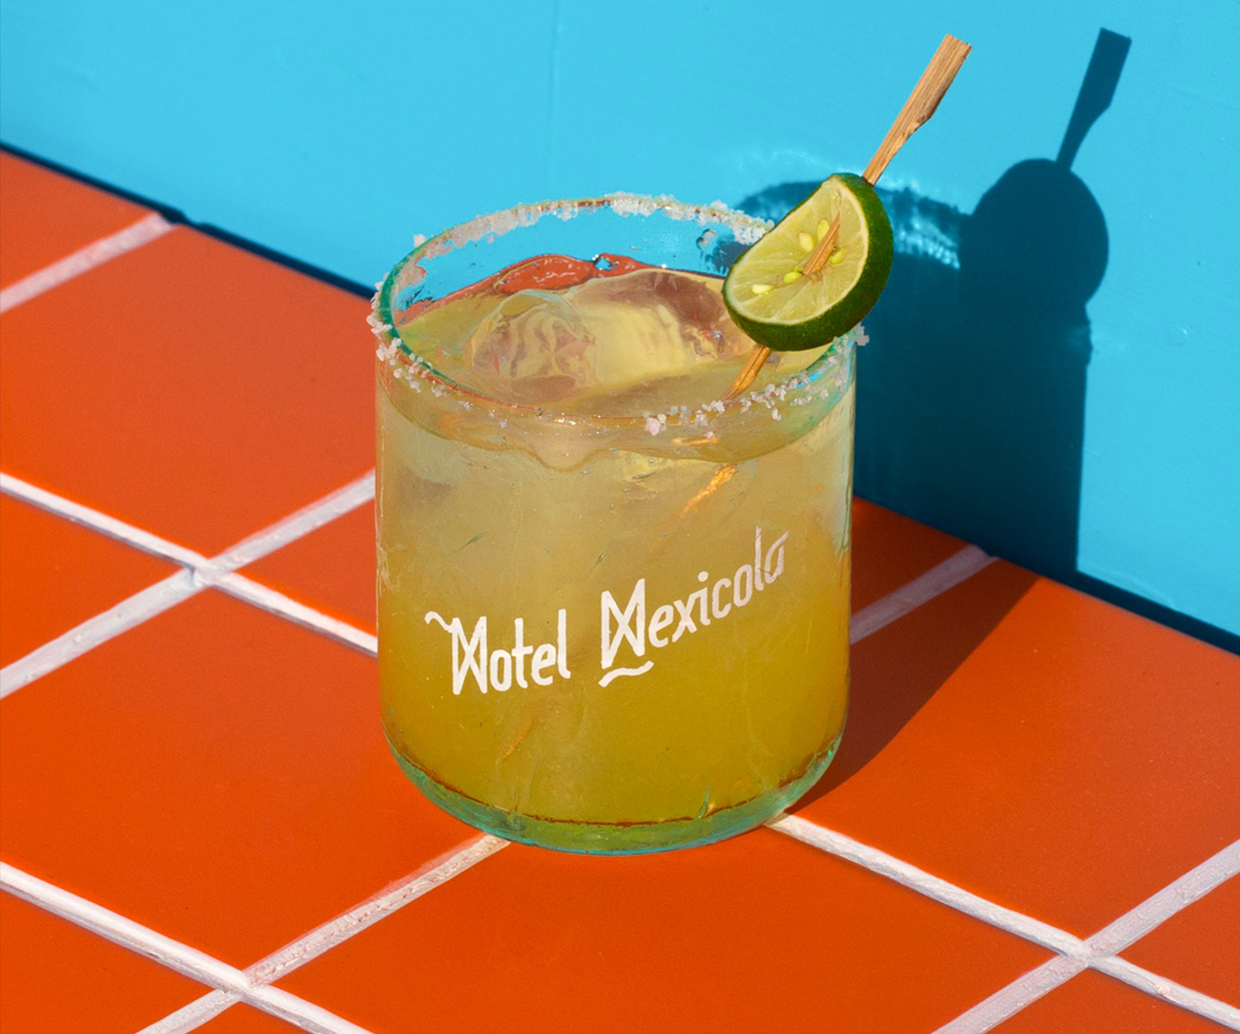 delicious looking cocktail